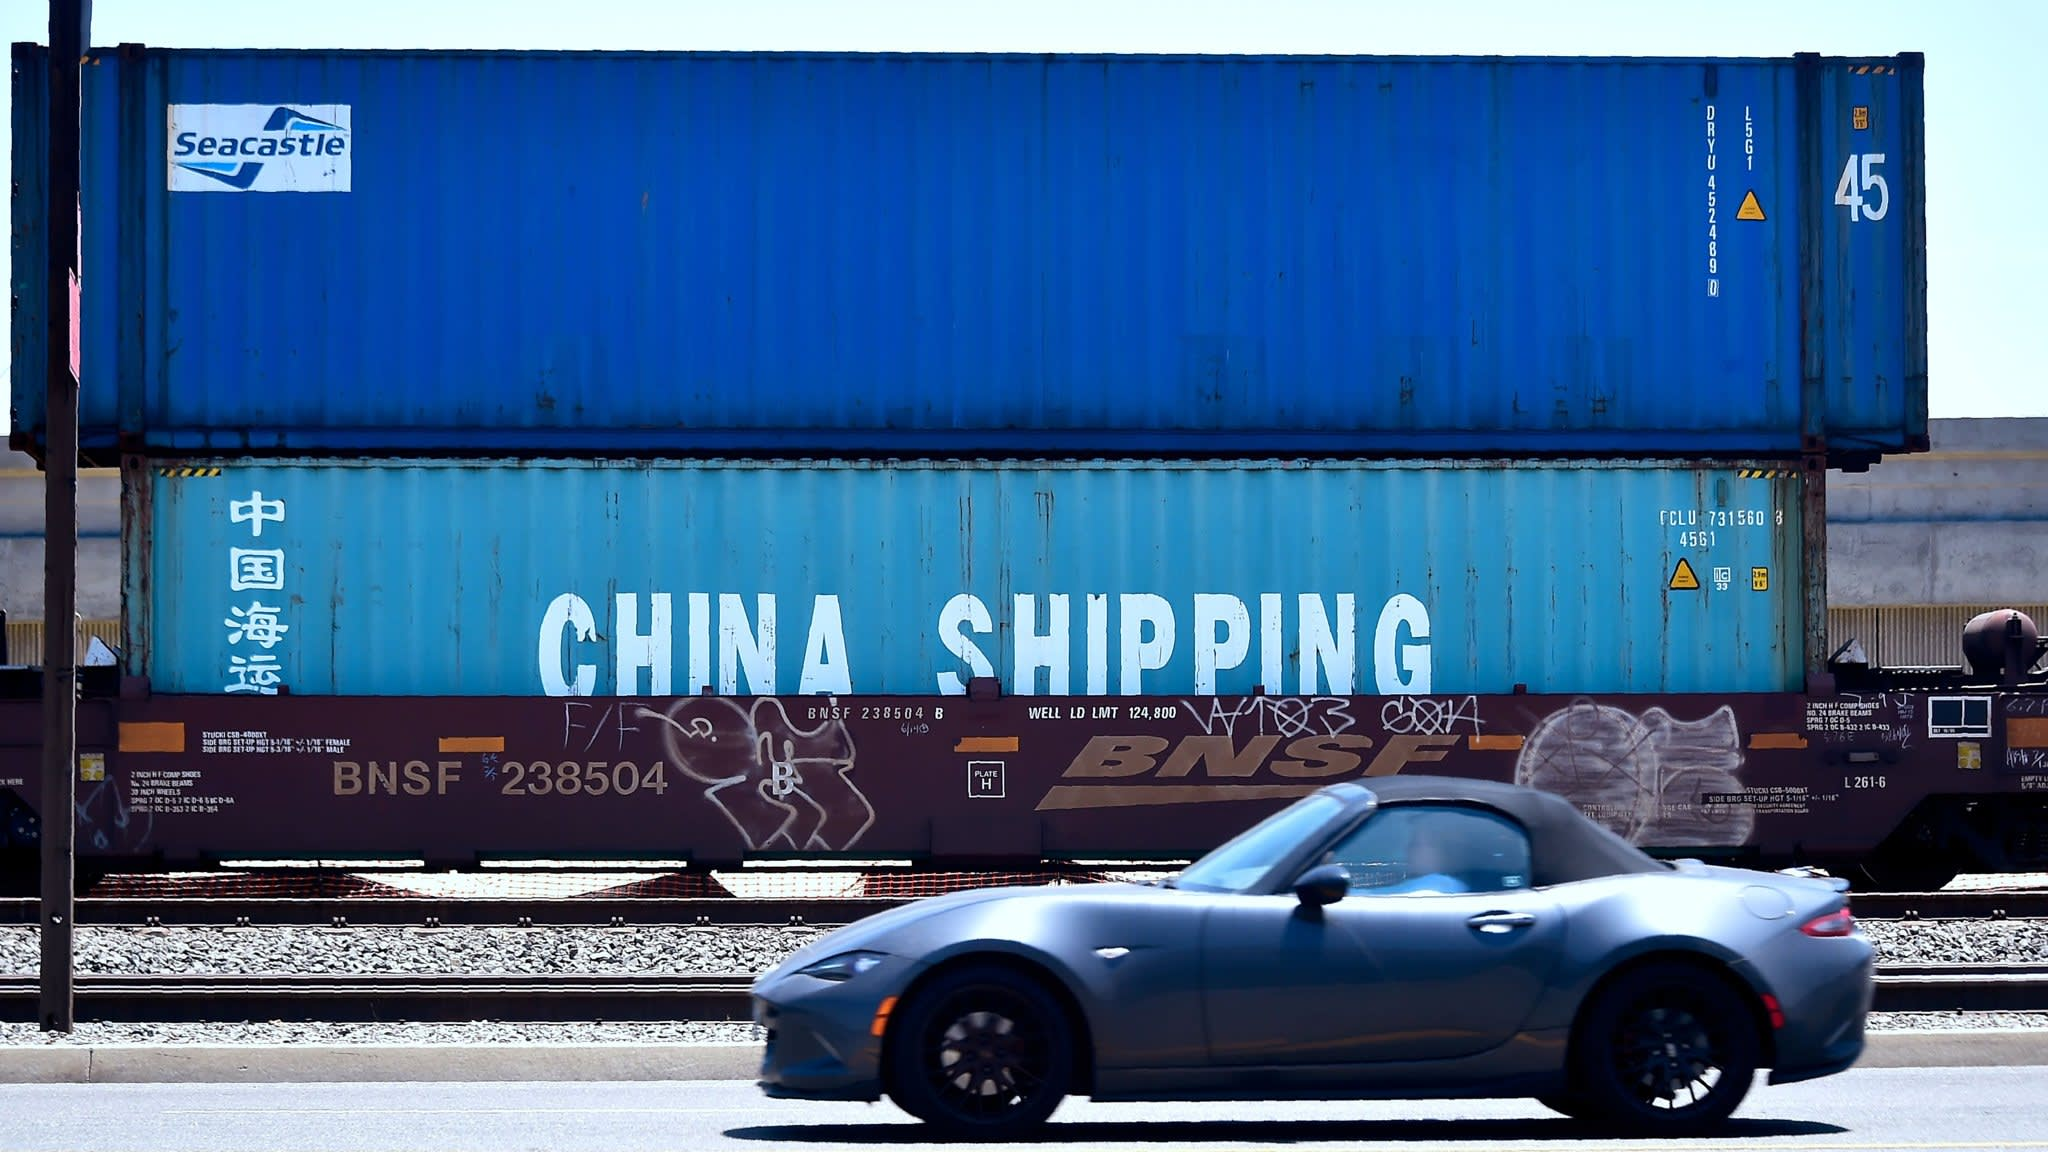 China raises trade tensions by rejecting US call for talks